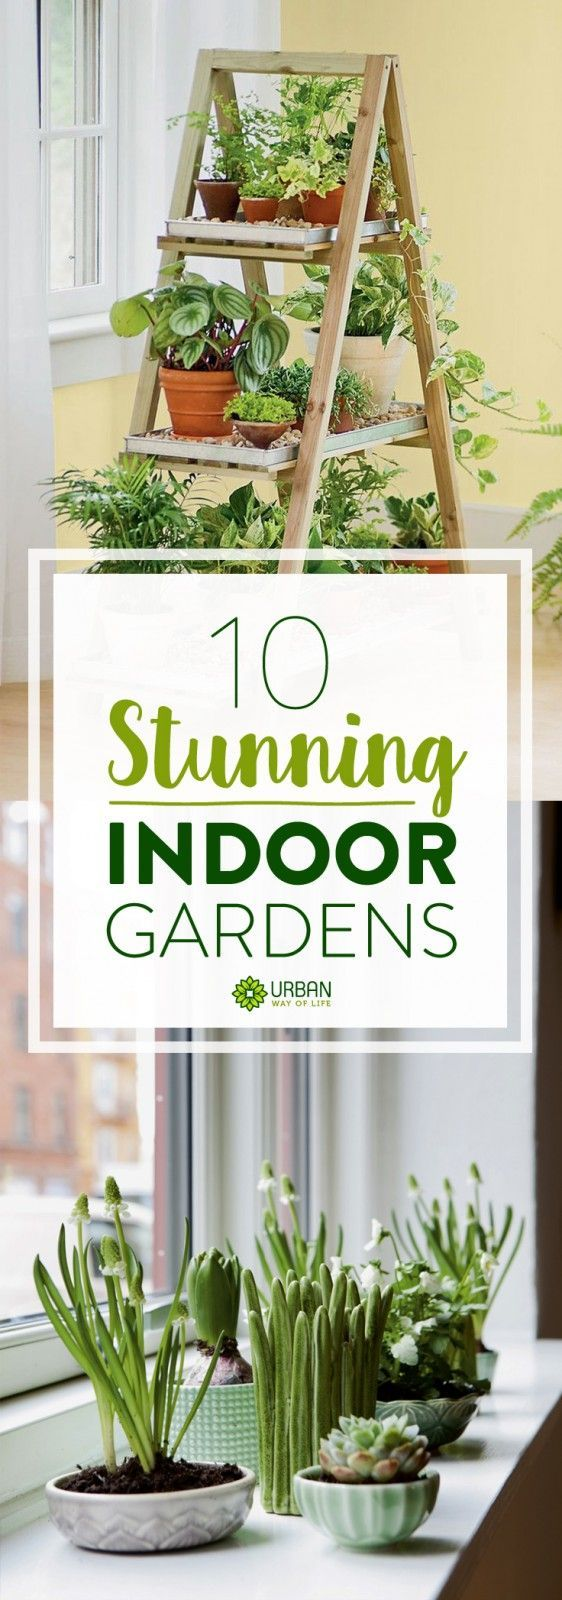 Get inspired 10 stunning indoor gardens gardens indoor for Ideas for your garden